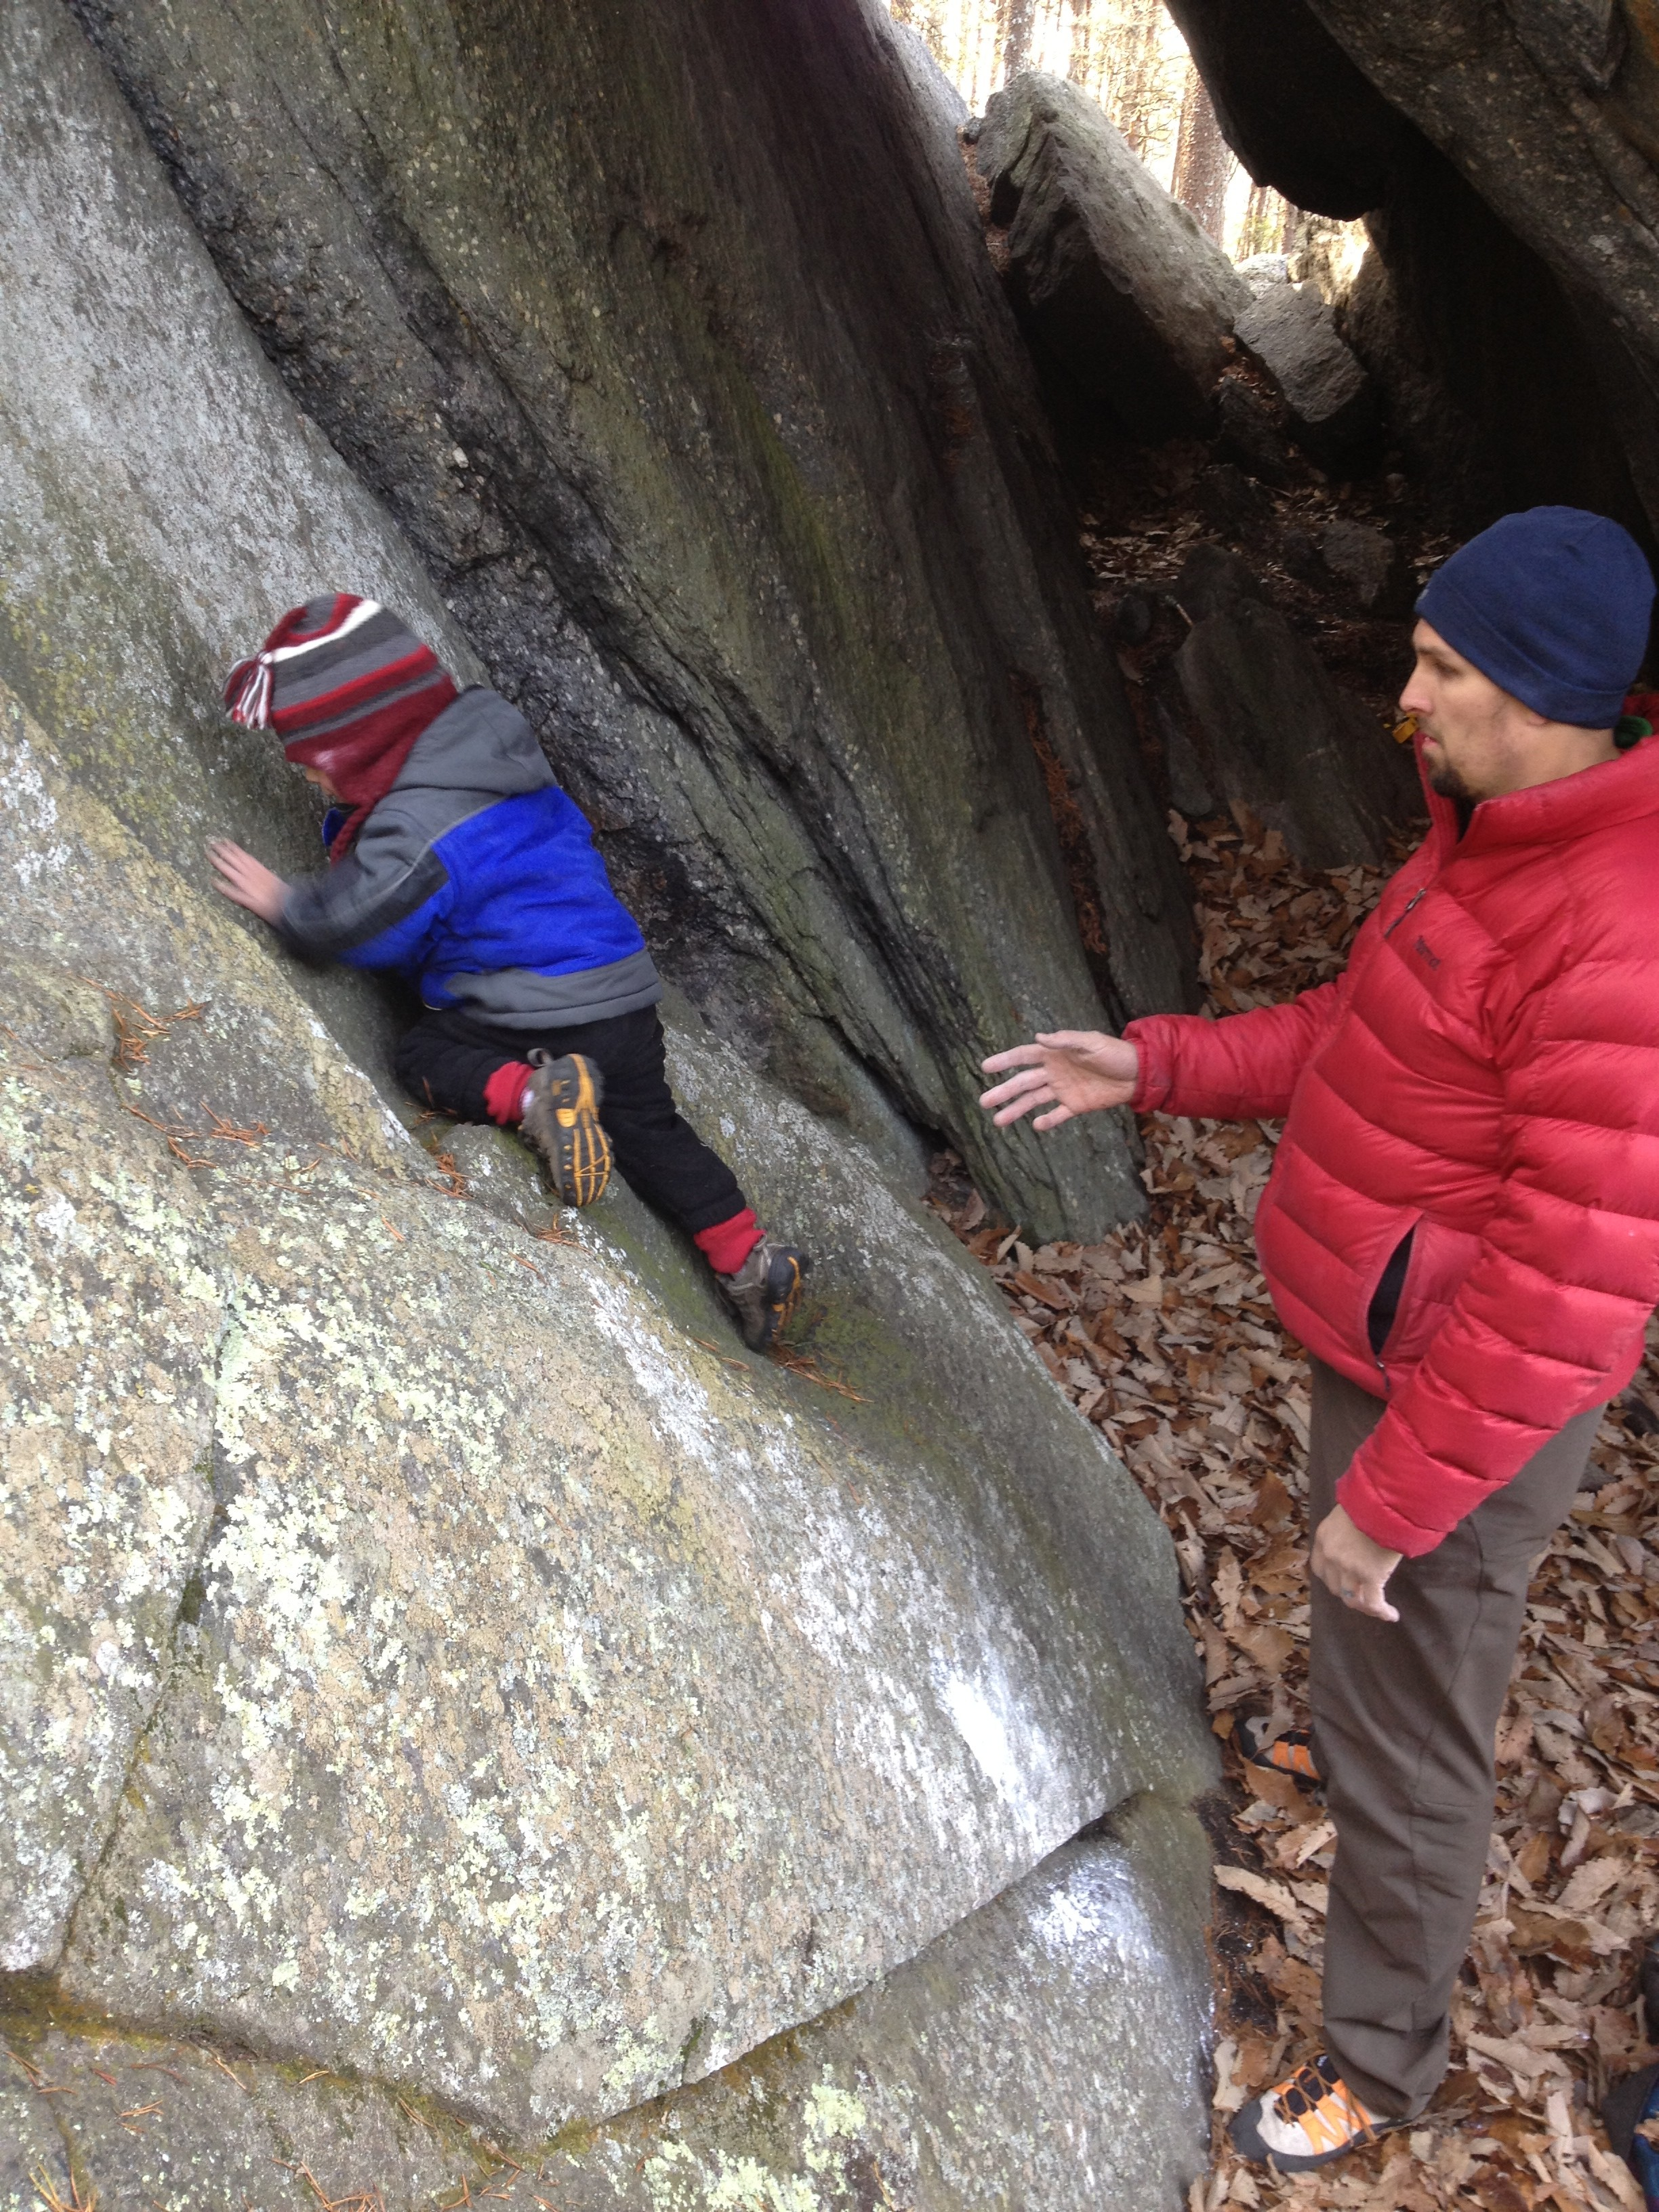 Cragbaby's turn to get his slab skills on at Dixon.